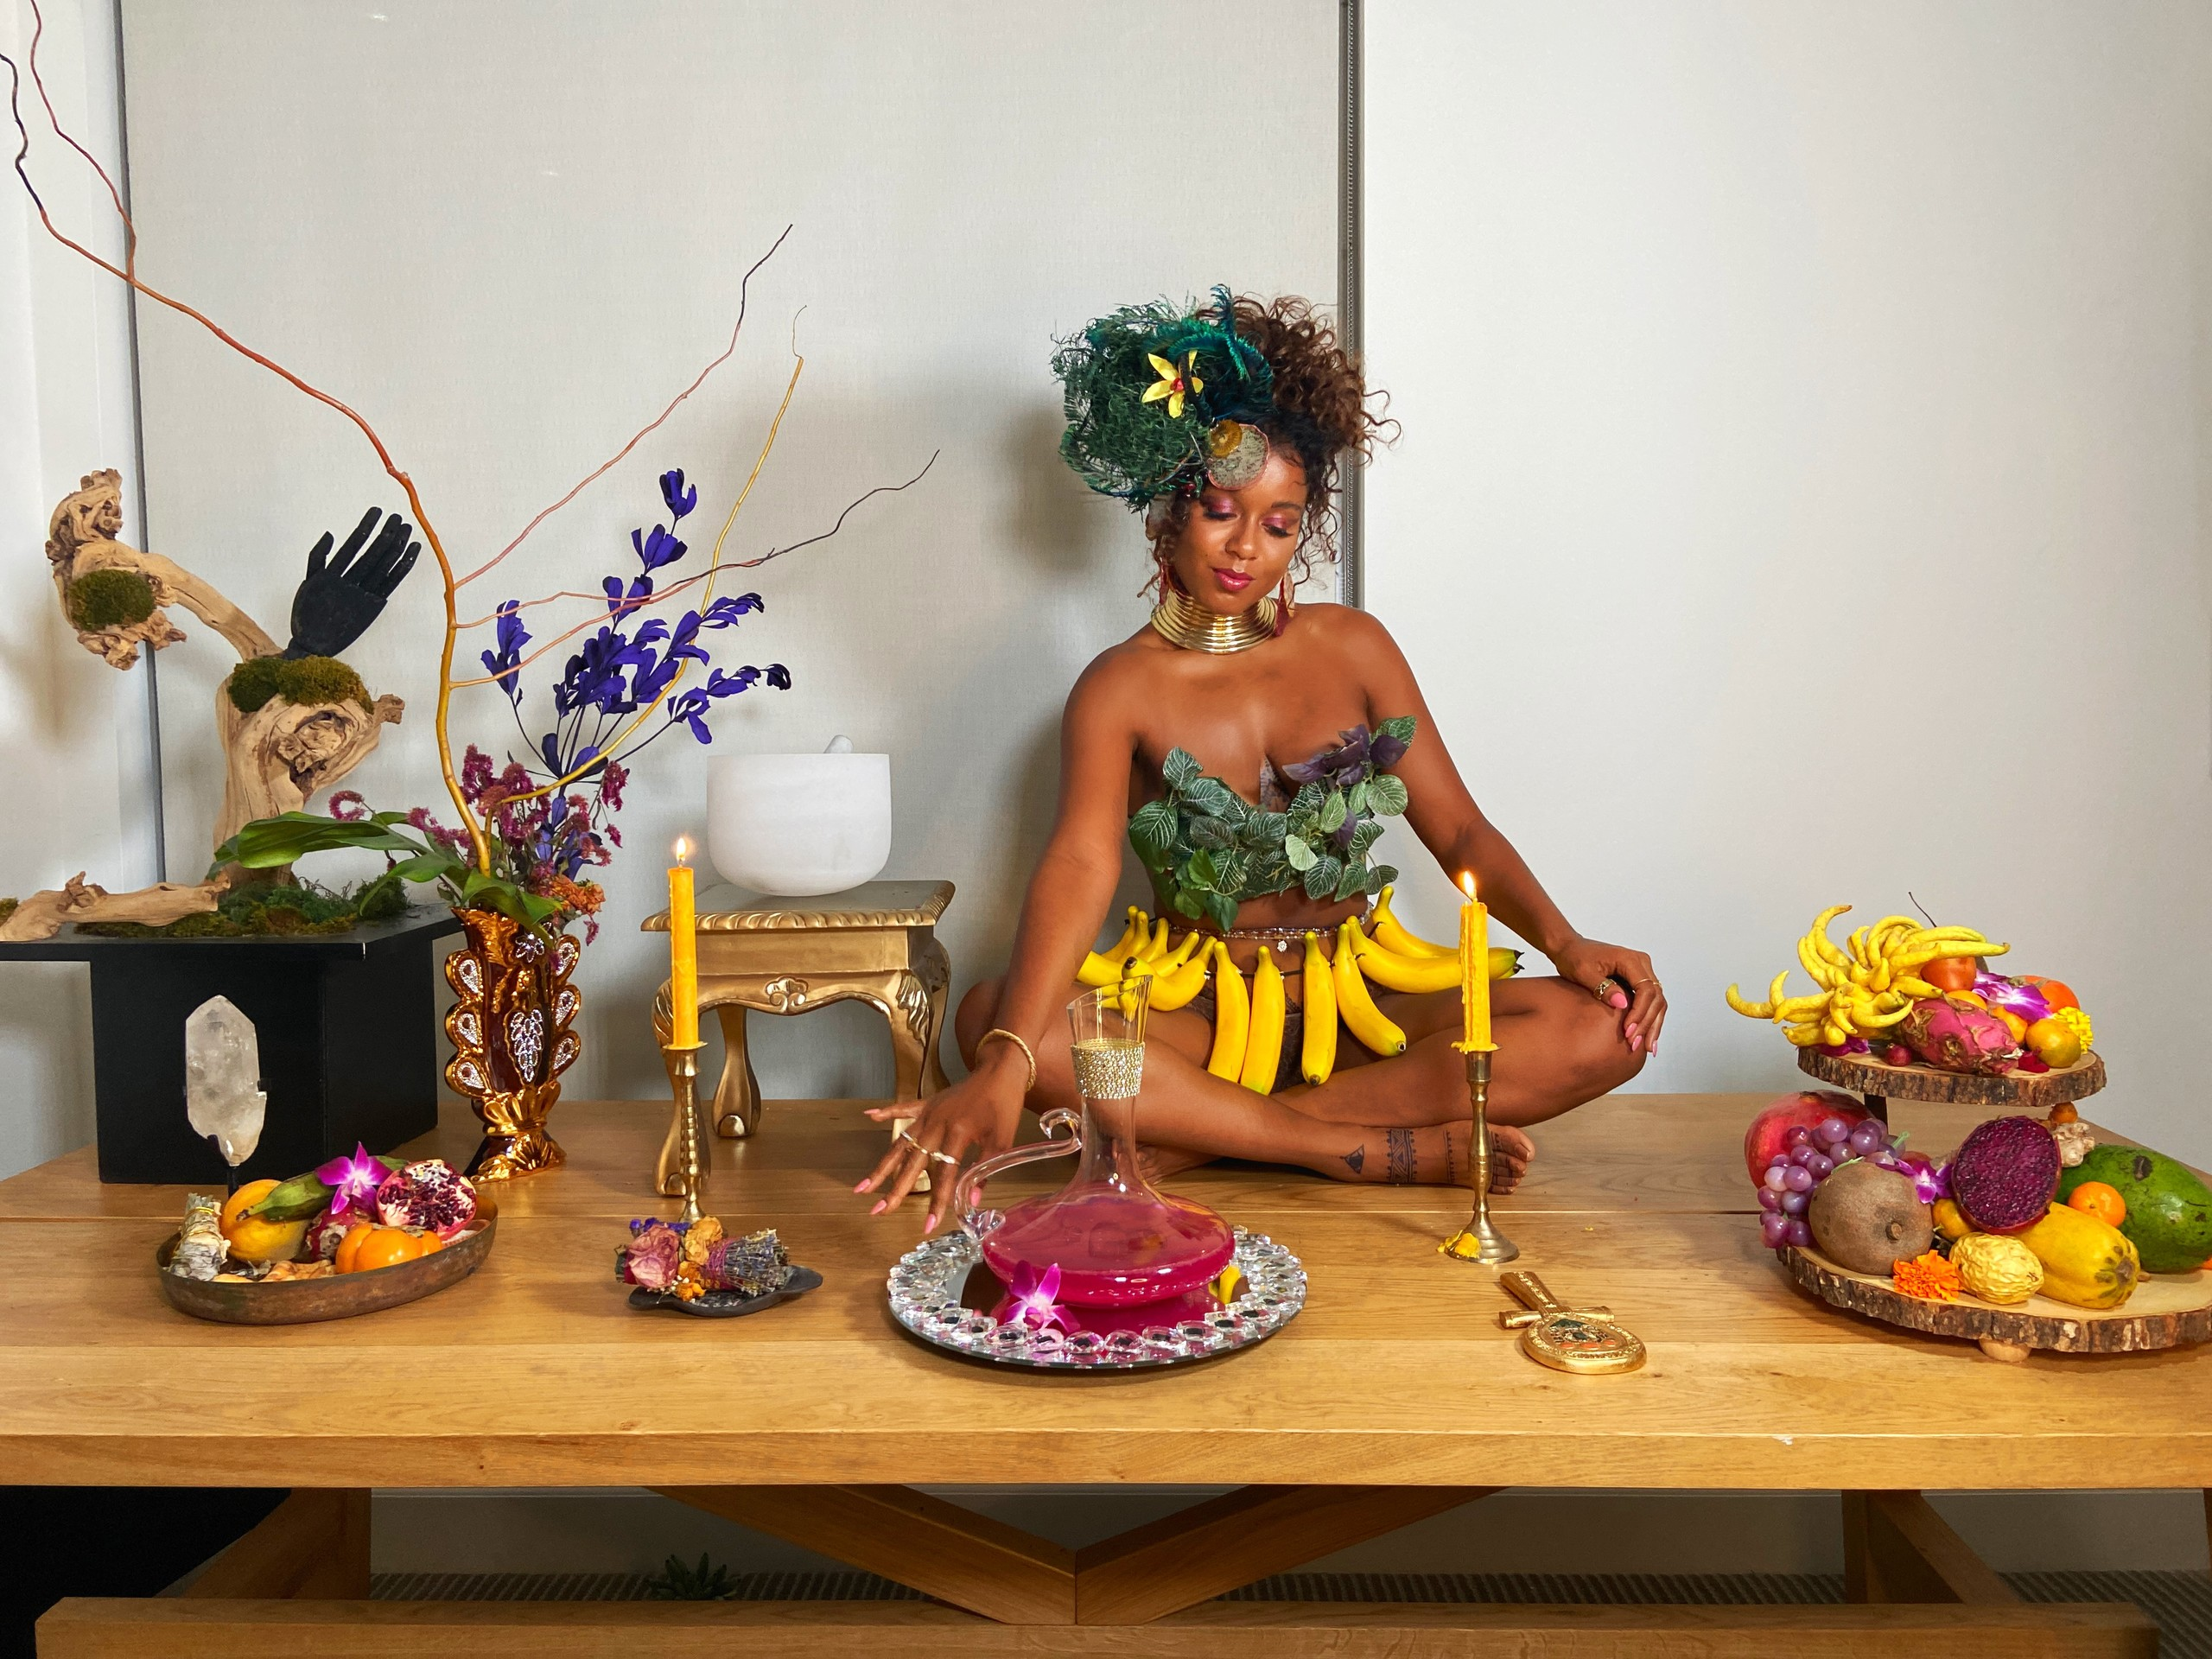 A medium-dark skinned adult woman sits cross-legged on a long wooden table set with platters of colorful fruit, candles, plants, and a pitcher of a pink liquid. She wears green leaves on her chest, gold jewelry, a skirt of bananas, and her hair pulled up with green feathers.